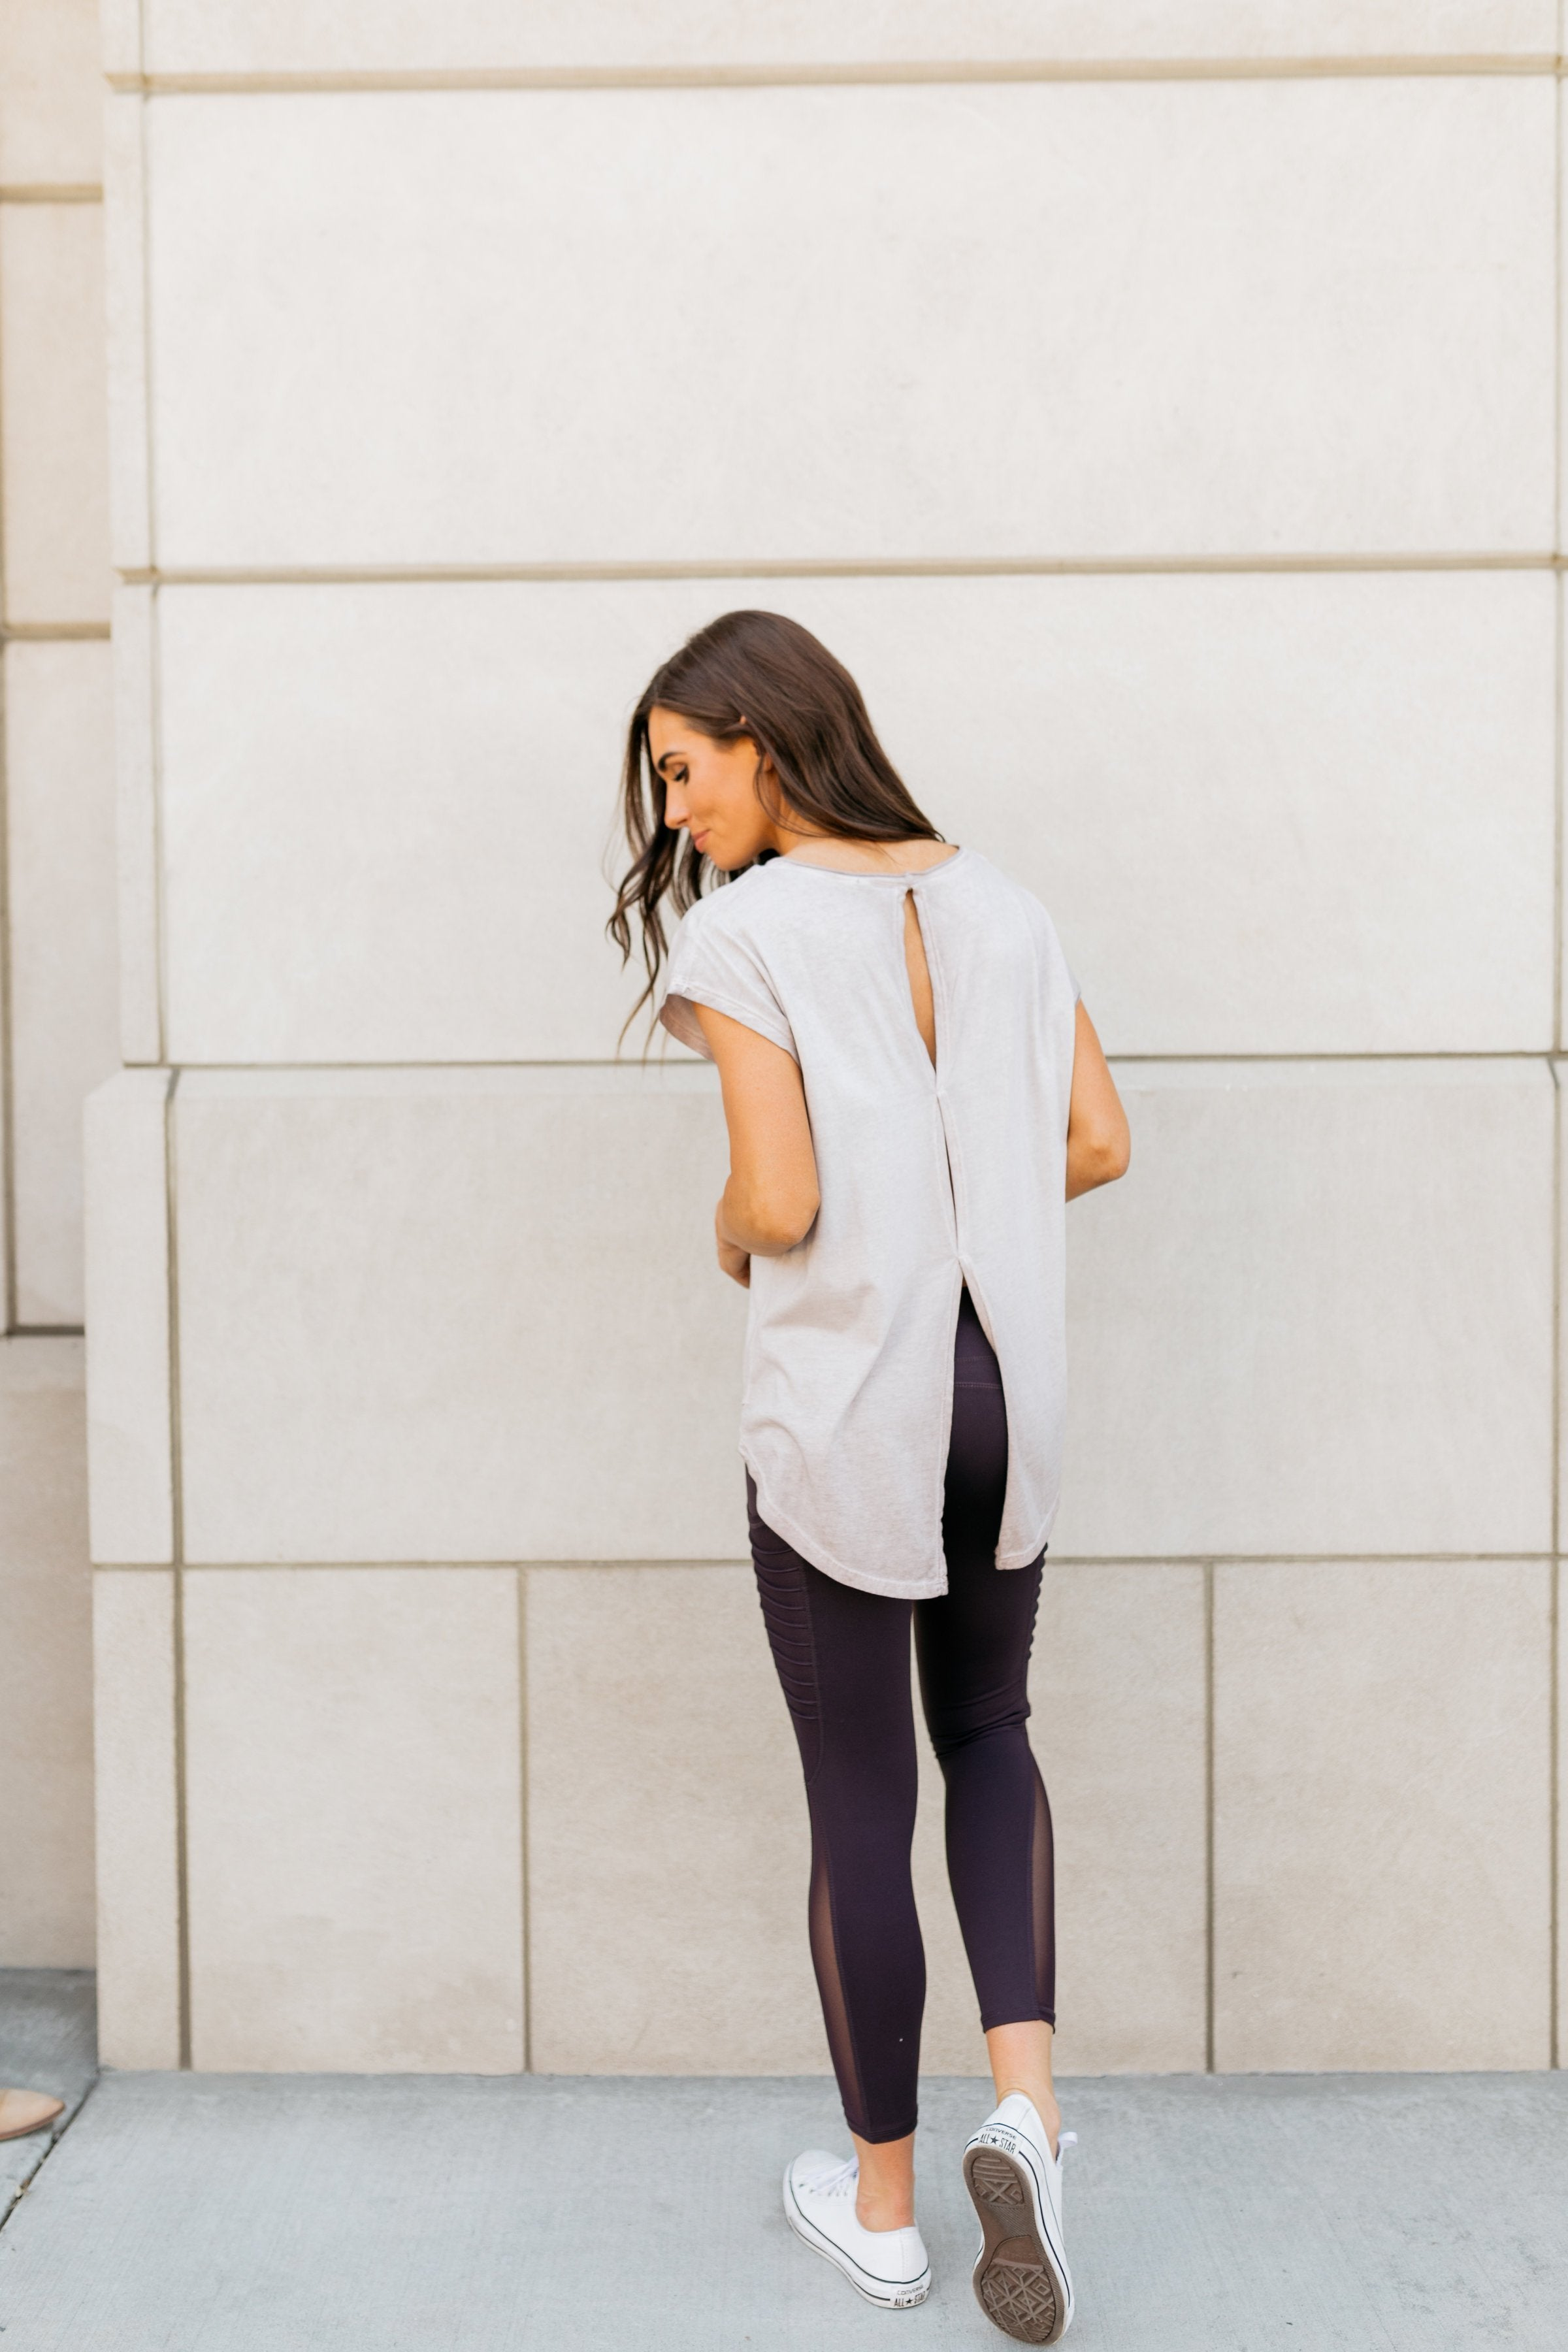 Don't Sweat It Workout Top In Faded Lilac - ALL SALES FINAL